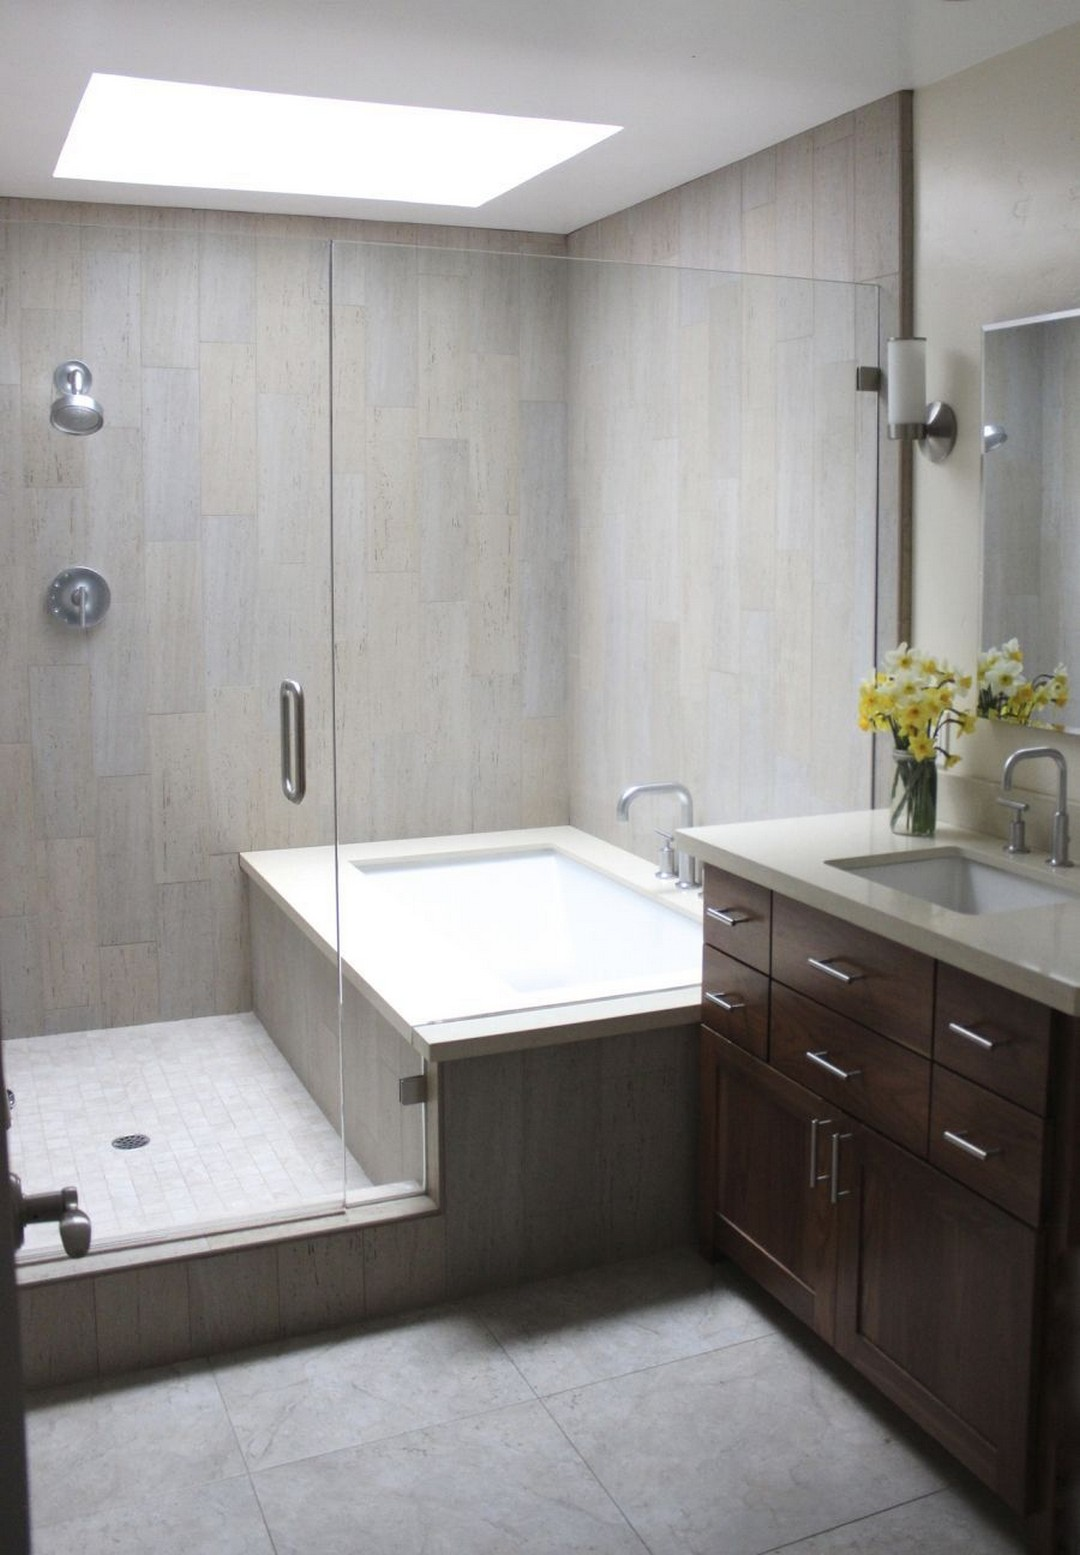 70 Master Bathroom Remodeling For Man and Woman Home Decor 15